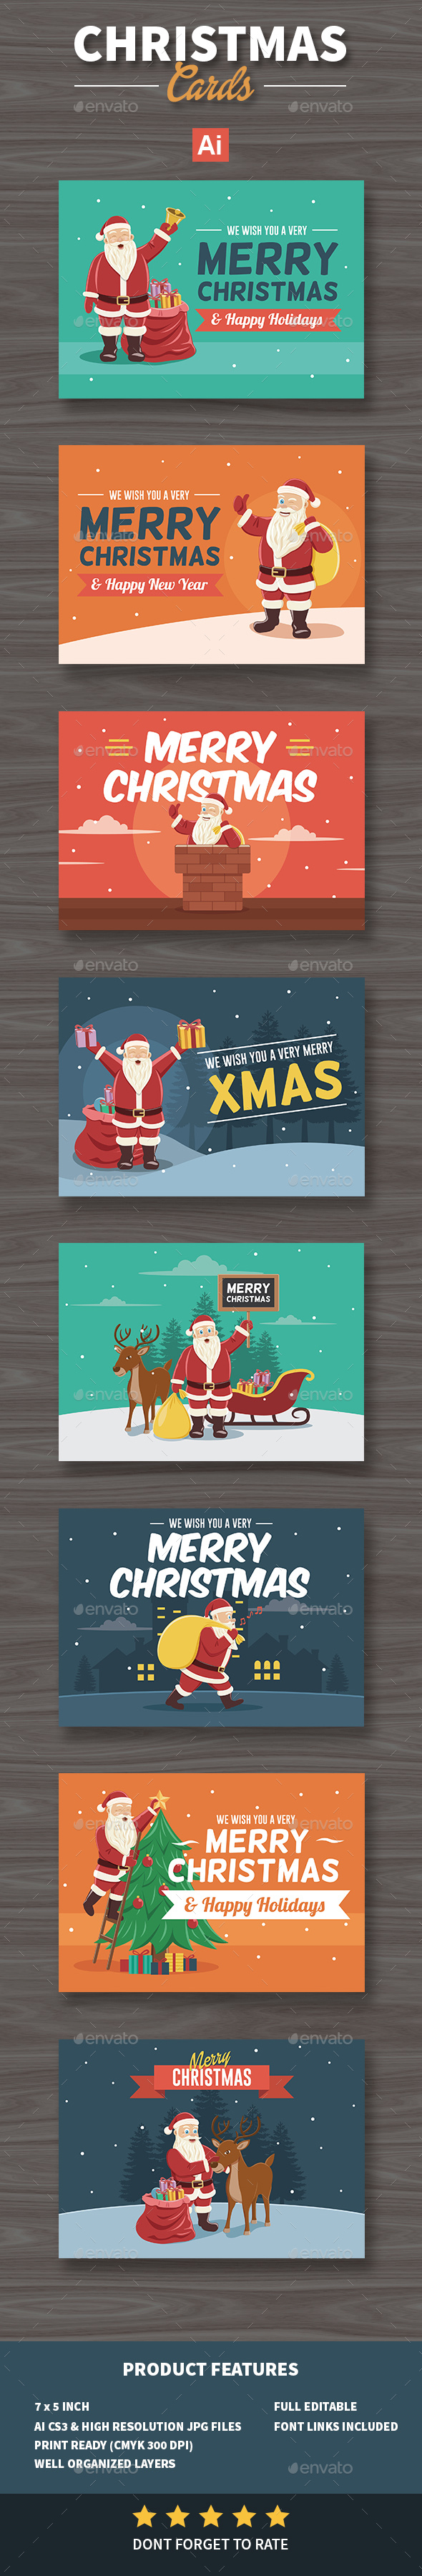 Set of Christmas Cards / Background